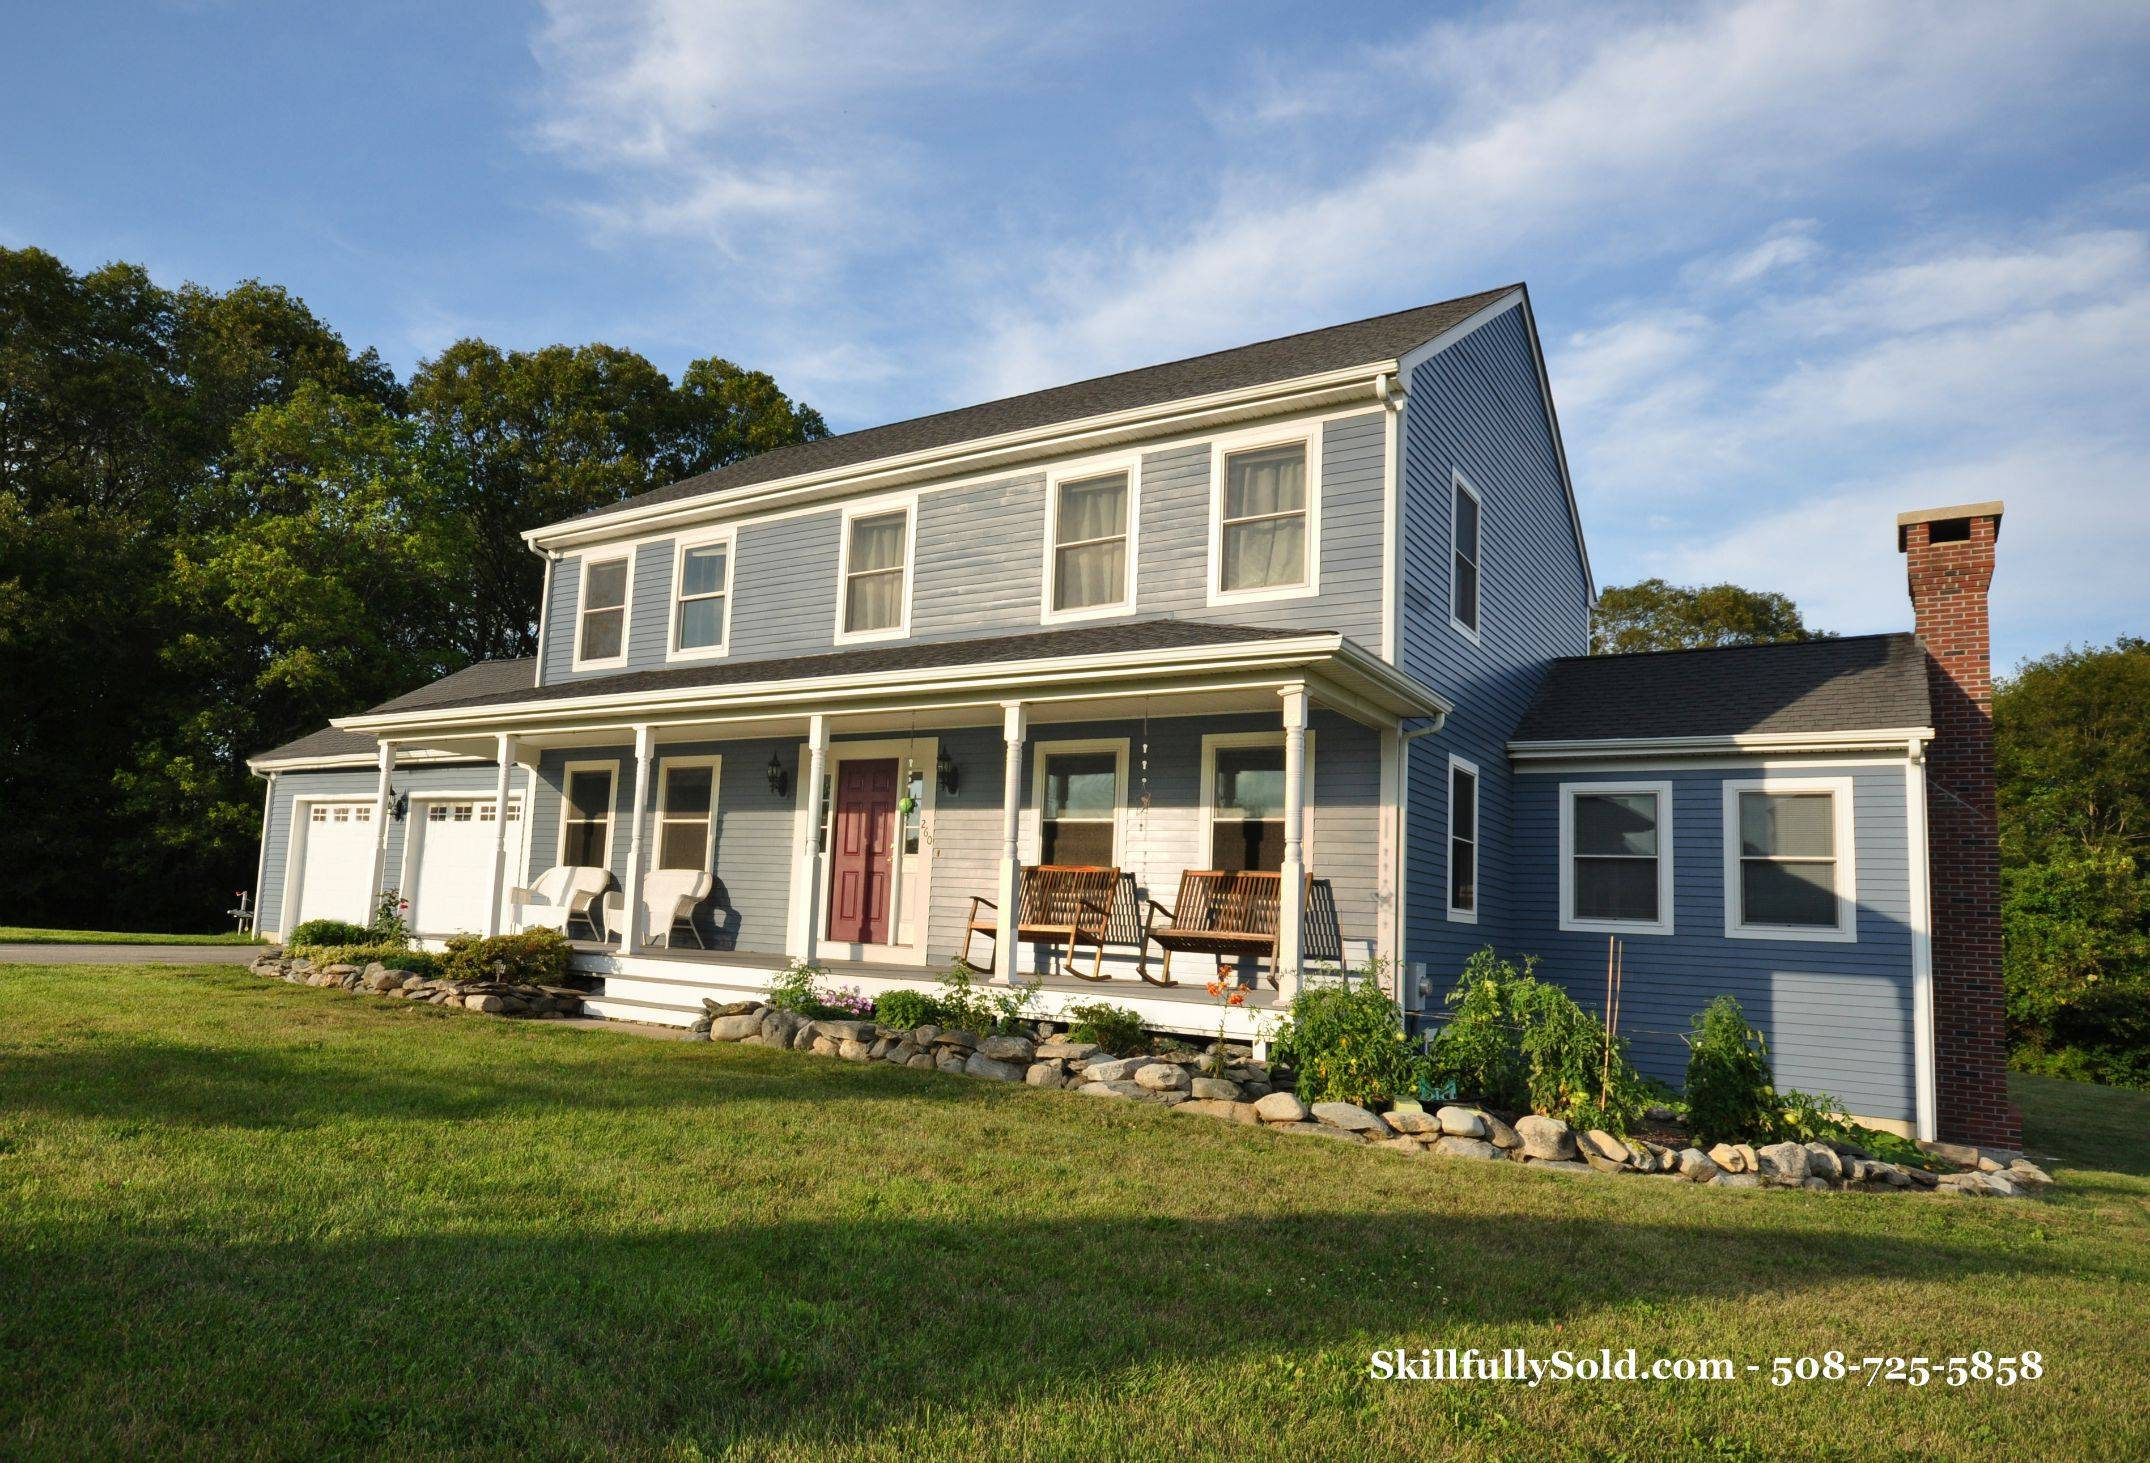 260 Hillcrest Drive Dighton Ma 02715 Home For Sale